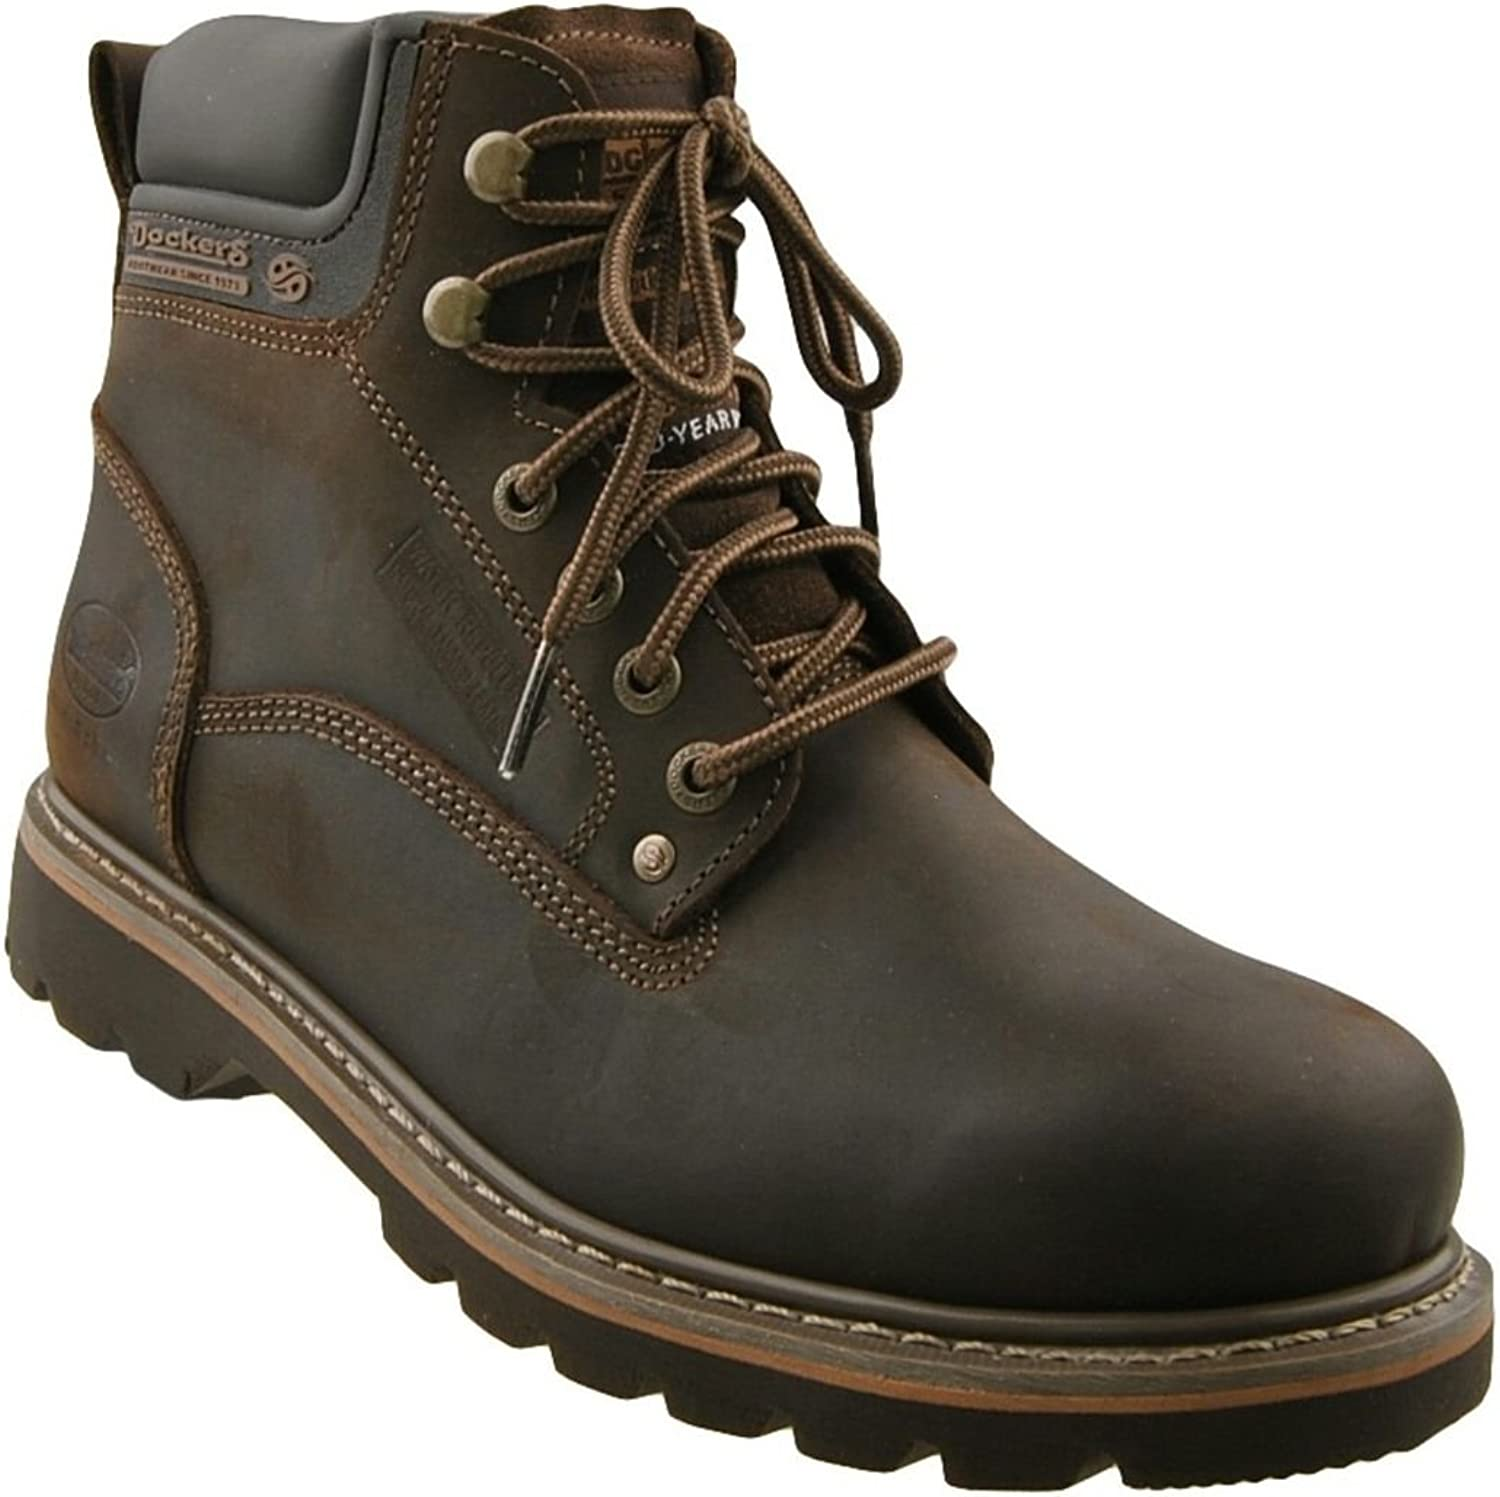 Dockers by Gerli Men's Leather Boots